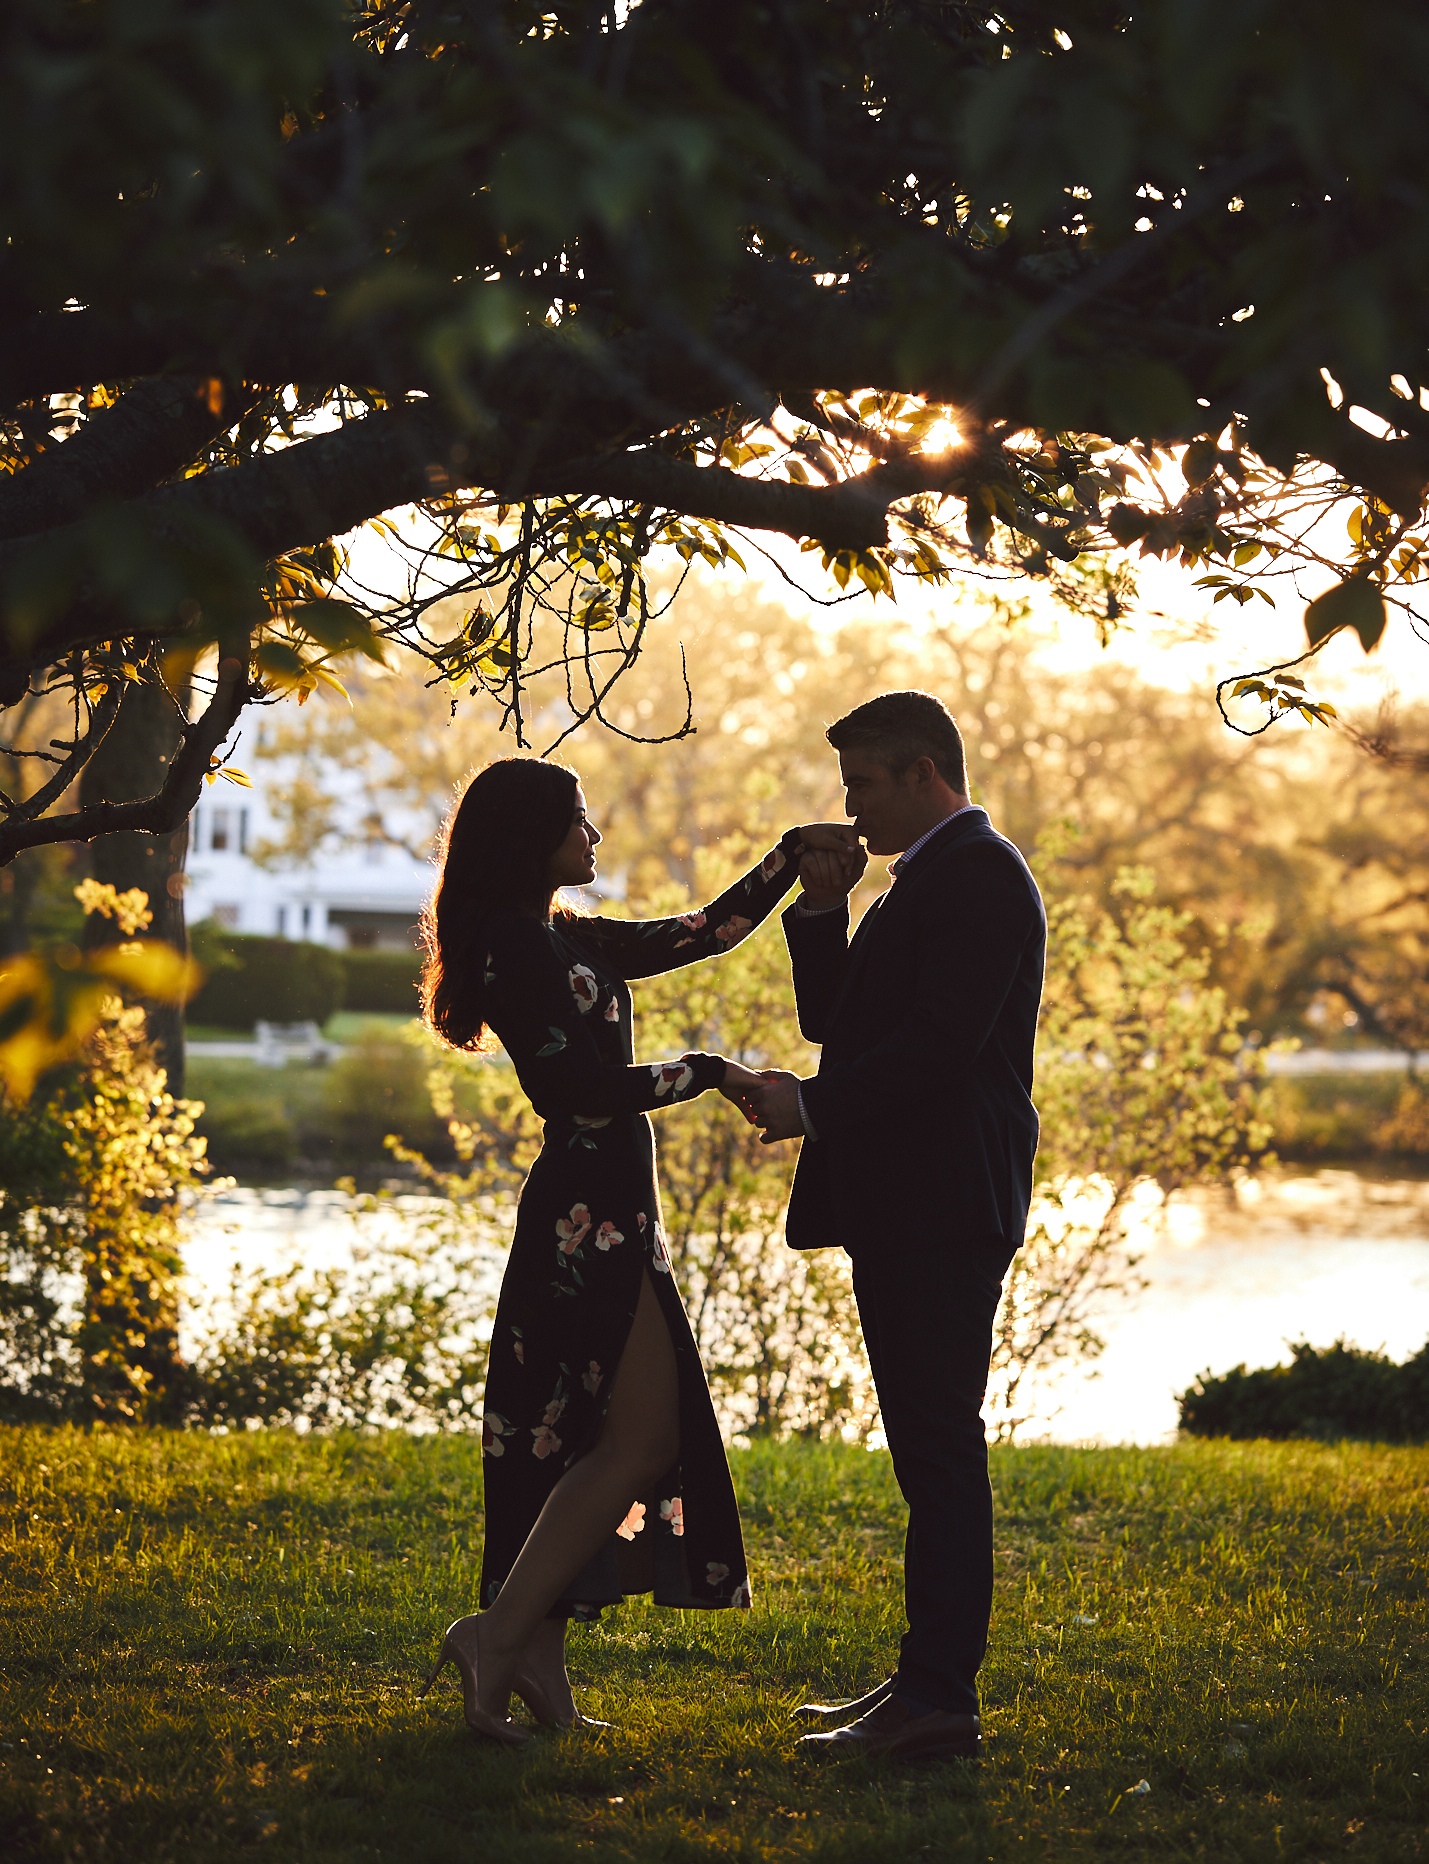 190516_SummerSpringLakeNJDivineParkEngagementSession_By_BriJohnsonWeddings0012.jpg